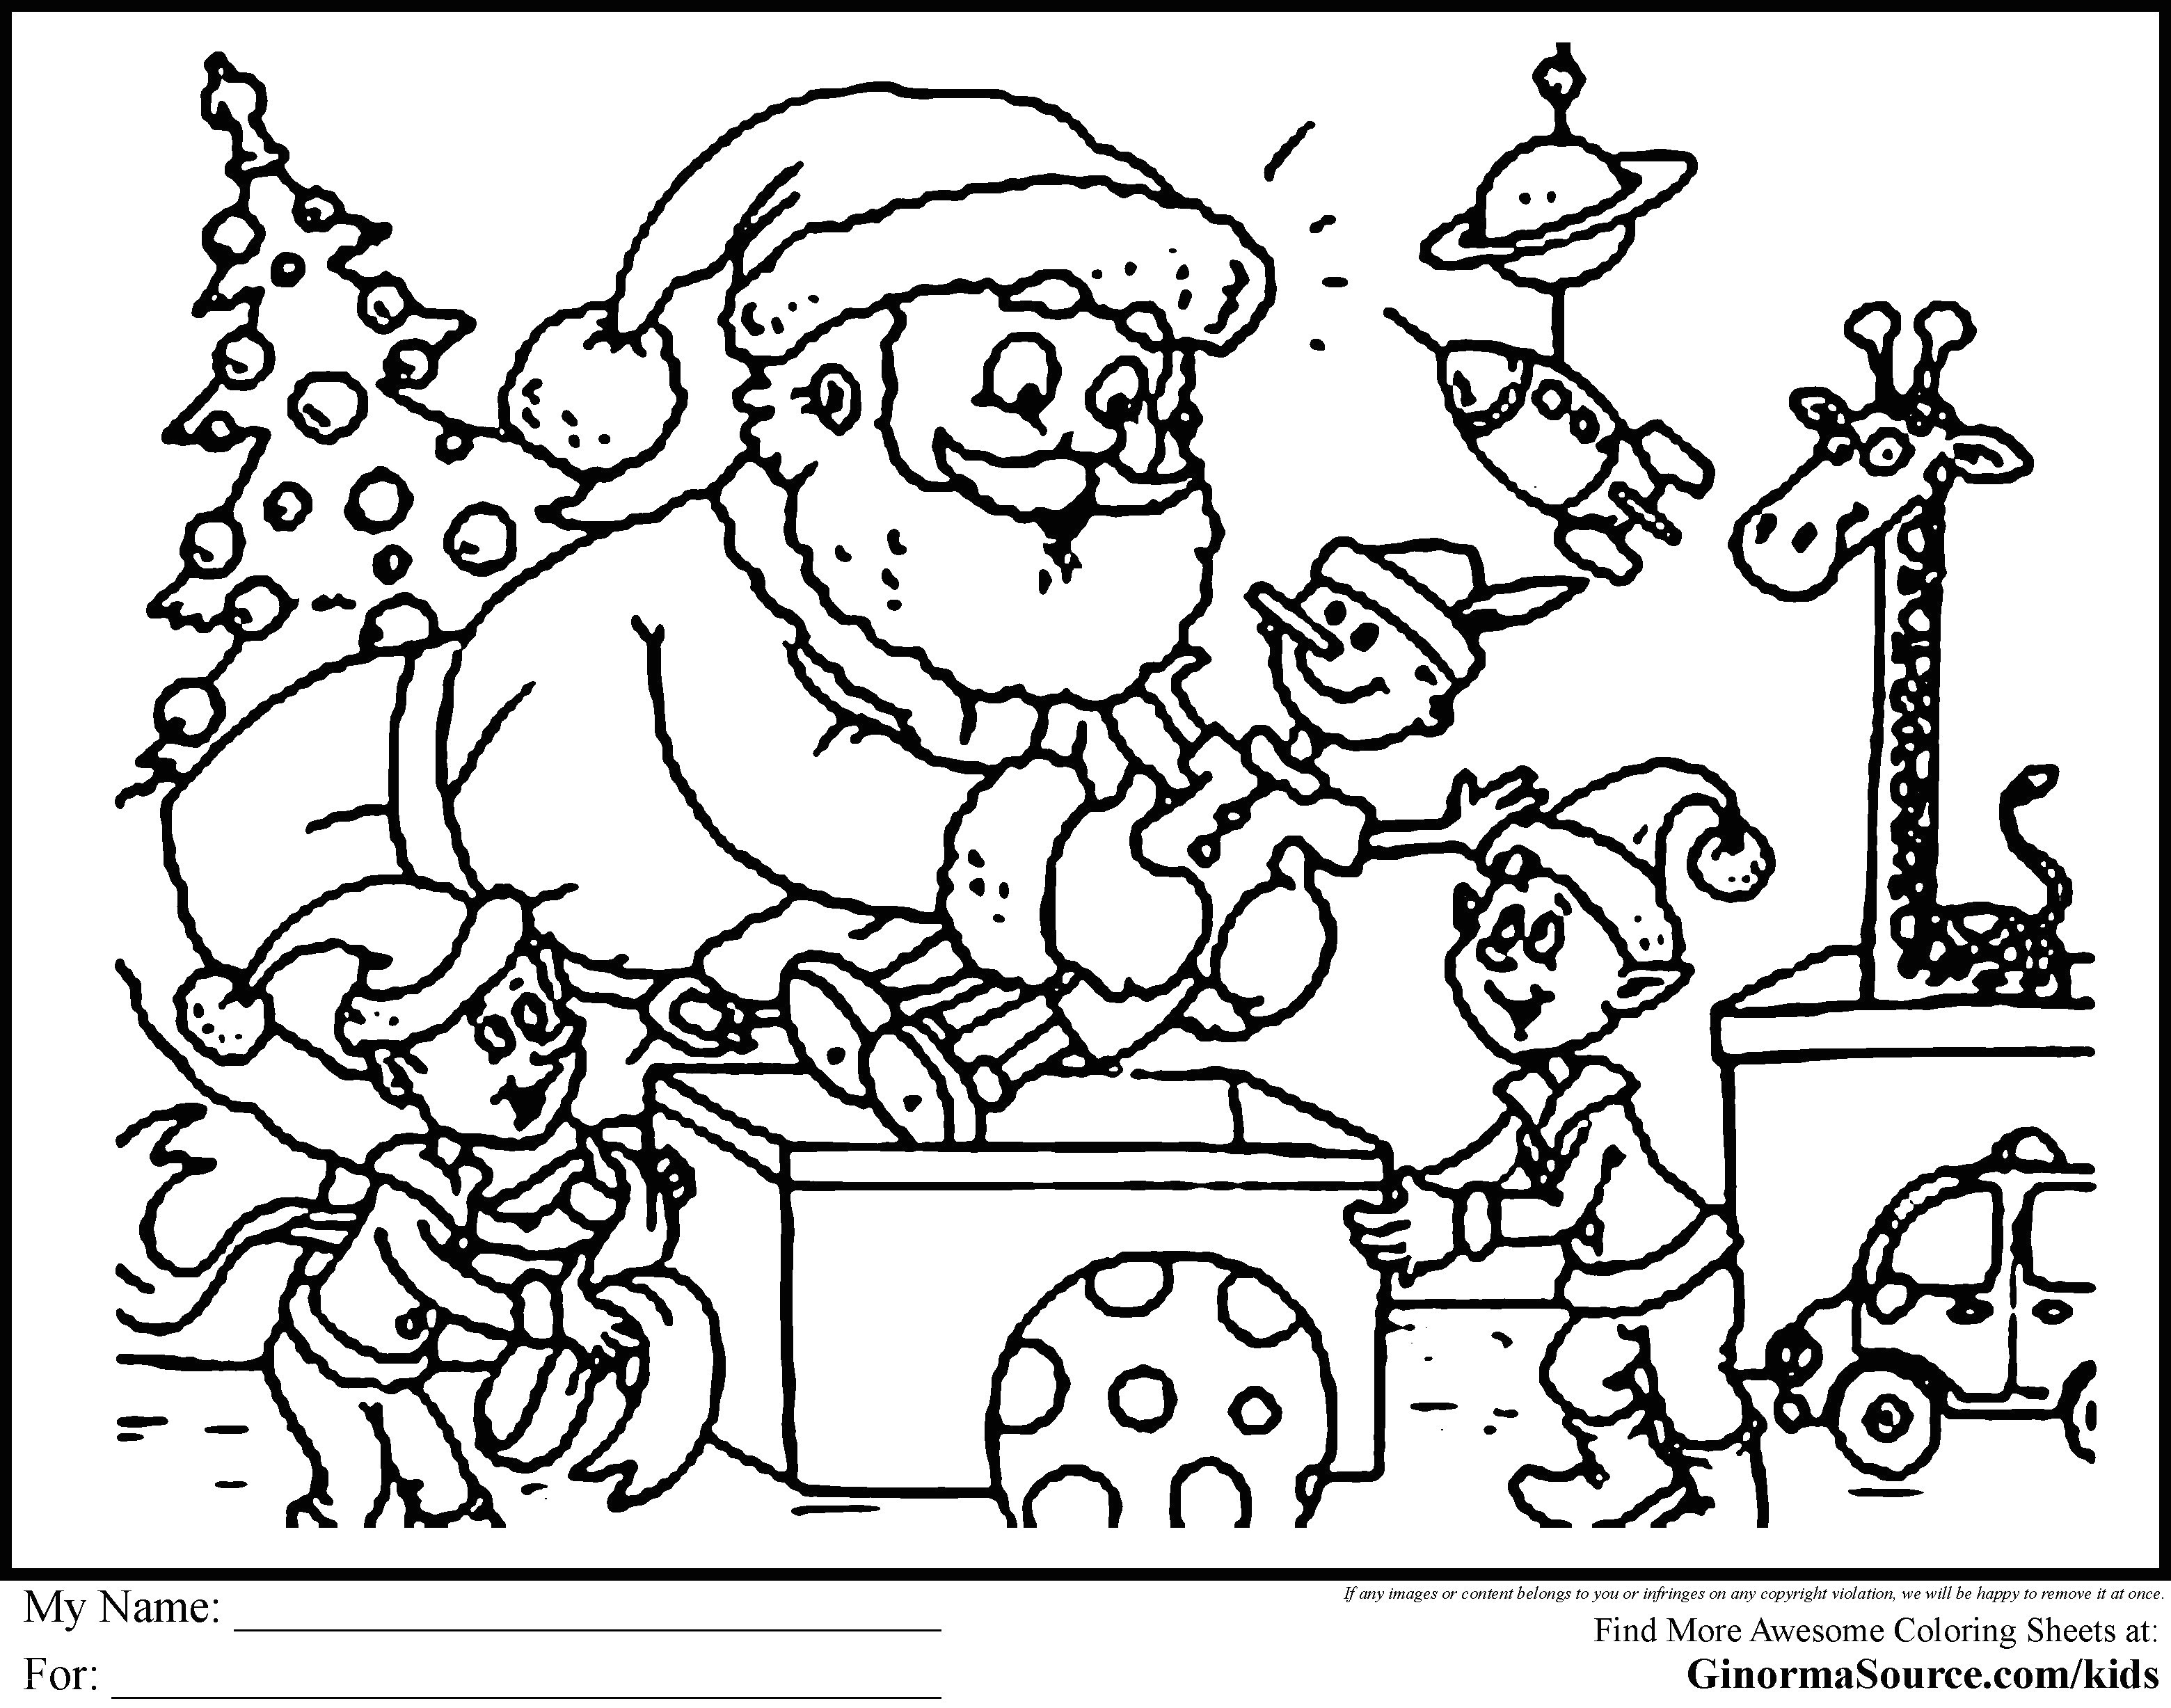 color sheets printing lovely coloring pages for print inspirational printable cds 0d coloring page